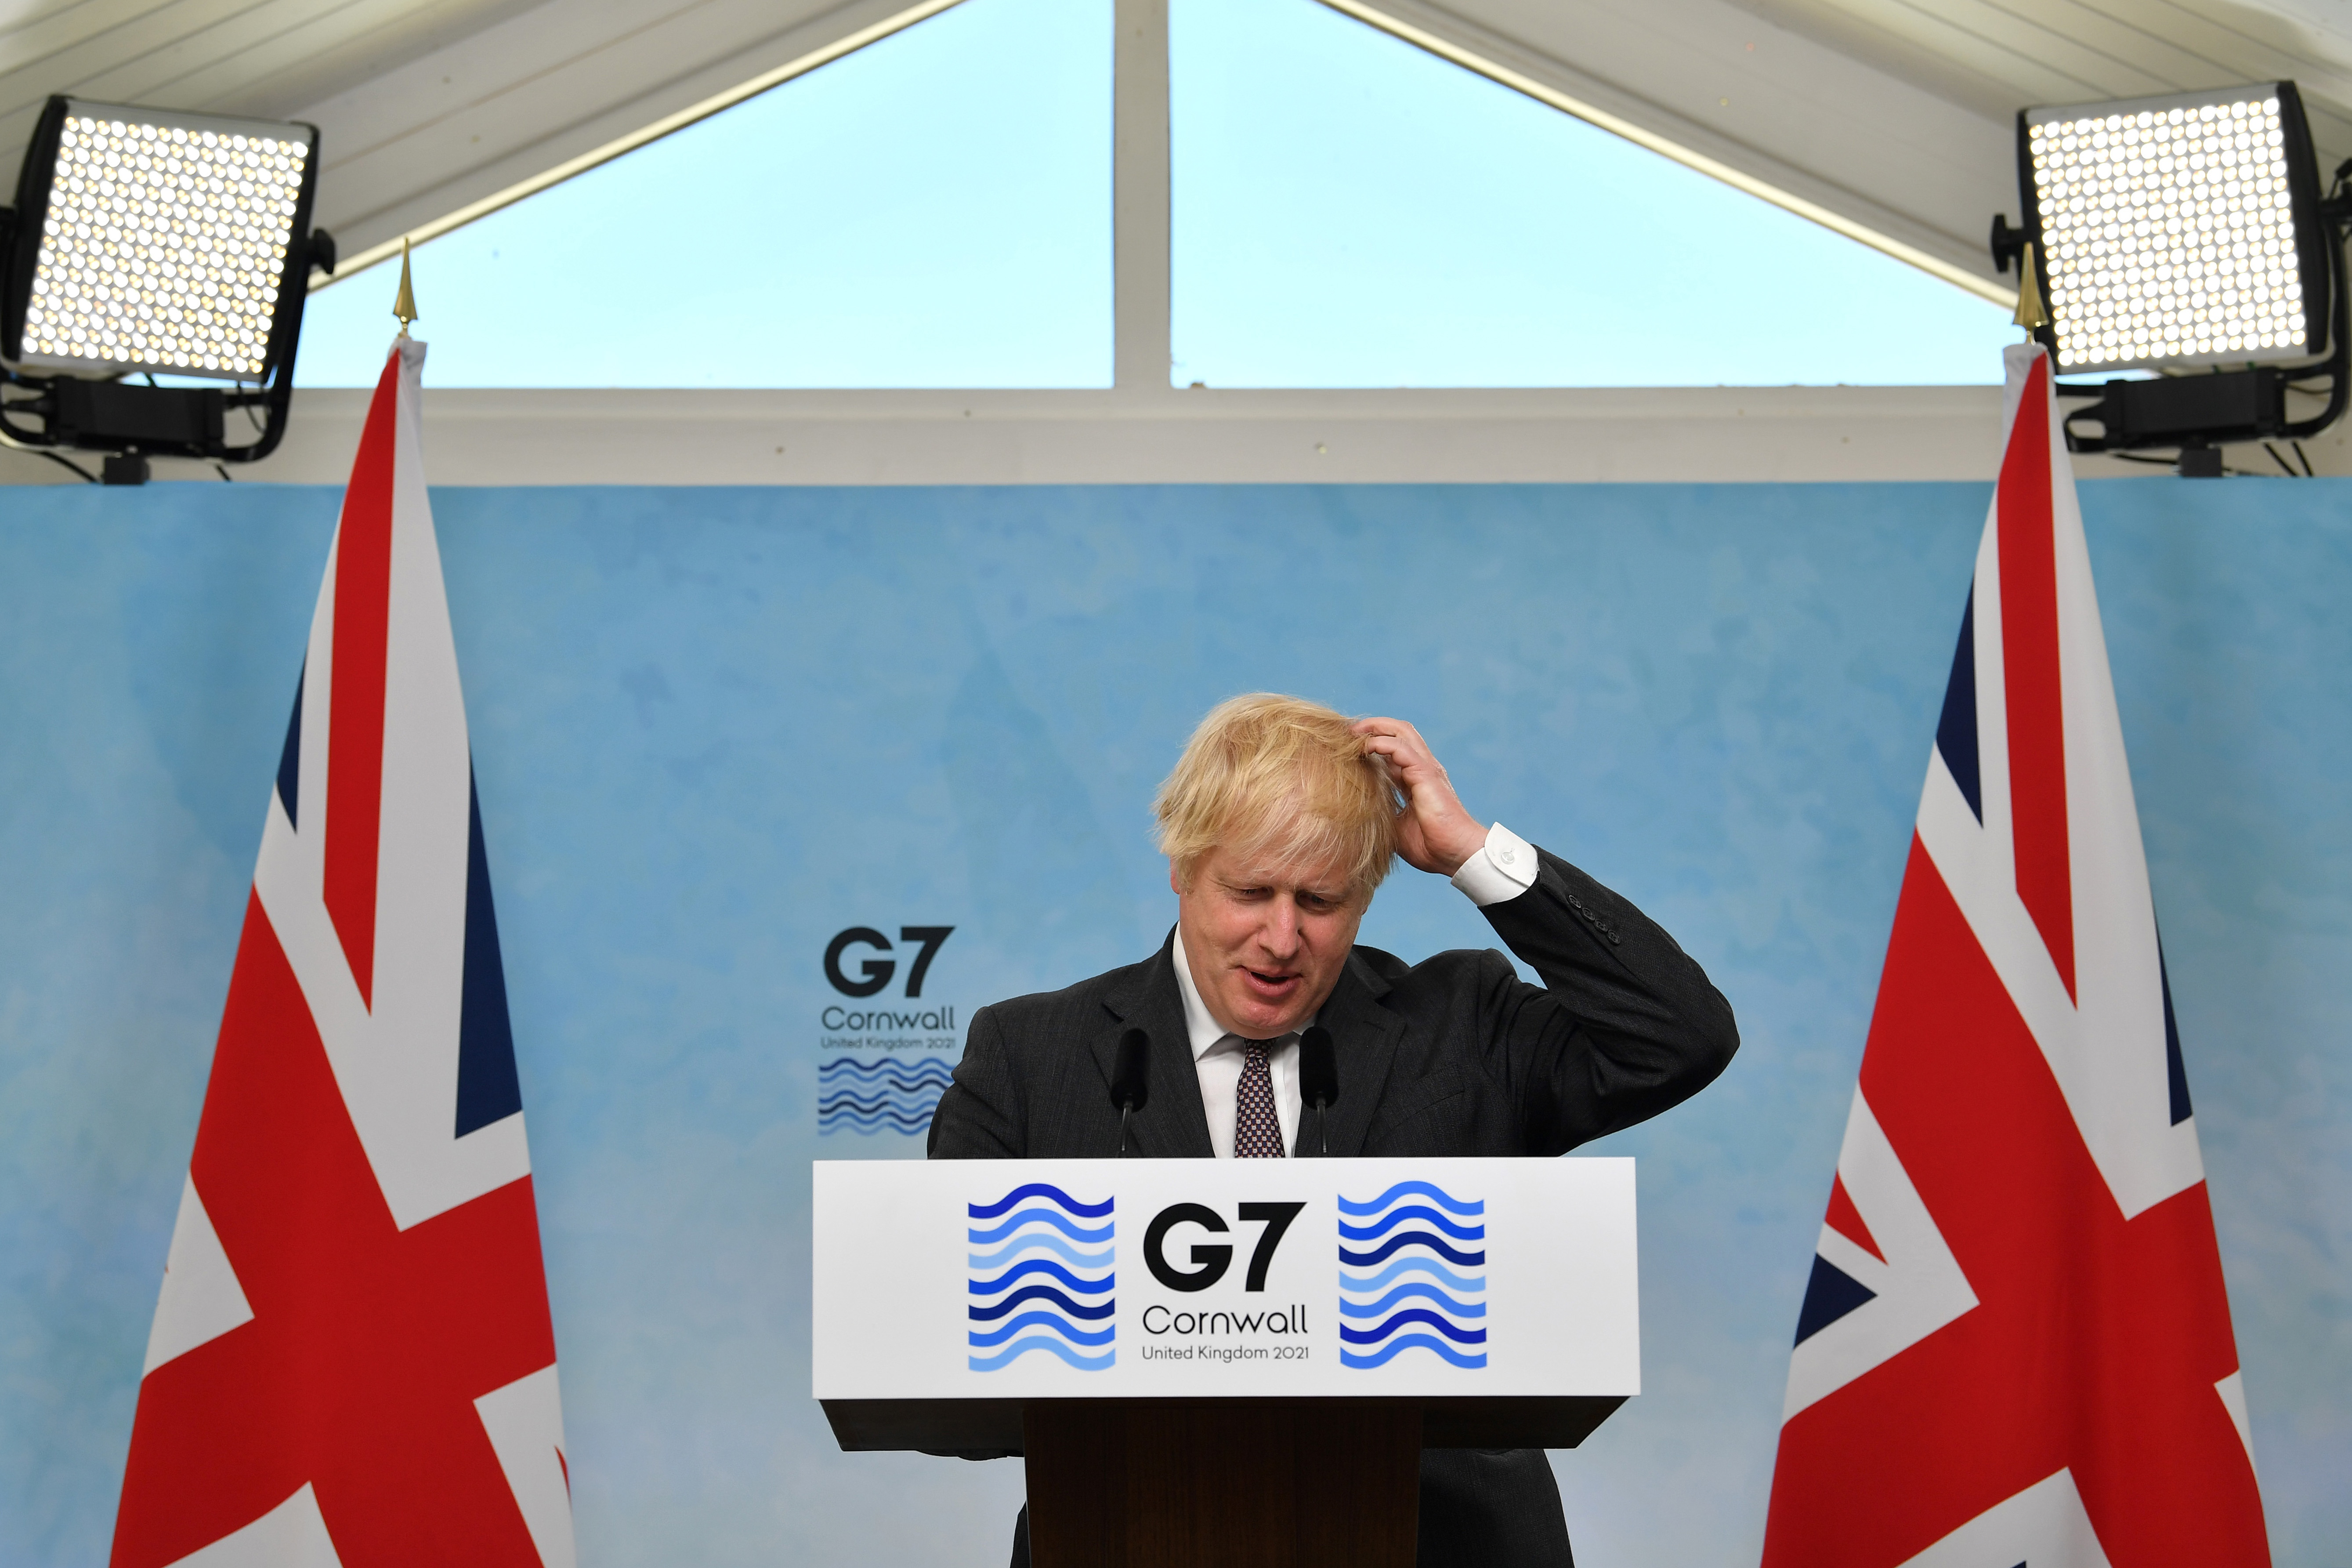 <p>CARBIS BAY, CORNWALL - JUNE 13:  British Prime Minister Boris Johnson takes part in a press conference on the final day of the G7 summit in Carbis Bay on June 13, 2021 in Cornwall, United Kingdom. UK Prime Minister, Boris Johnson, hosts leaders from the USA, Japan, Germany, France, Italy and Canada at the G7 Summit. This year the UK has invited India, South Africa, and South Korea to attend the Leaders' Summit as guest countries as well as the EU. (Photo by Ben Stansall - WPA Pool/Getty Images)</p>